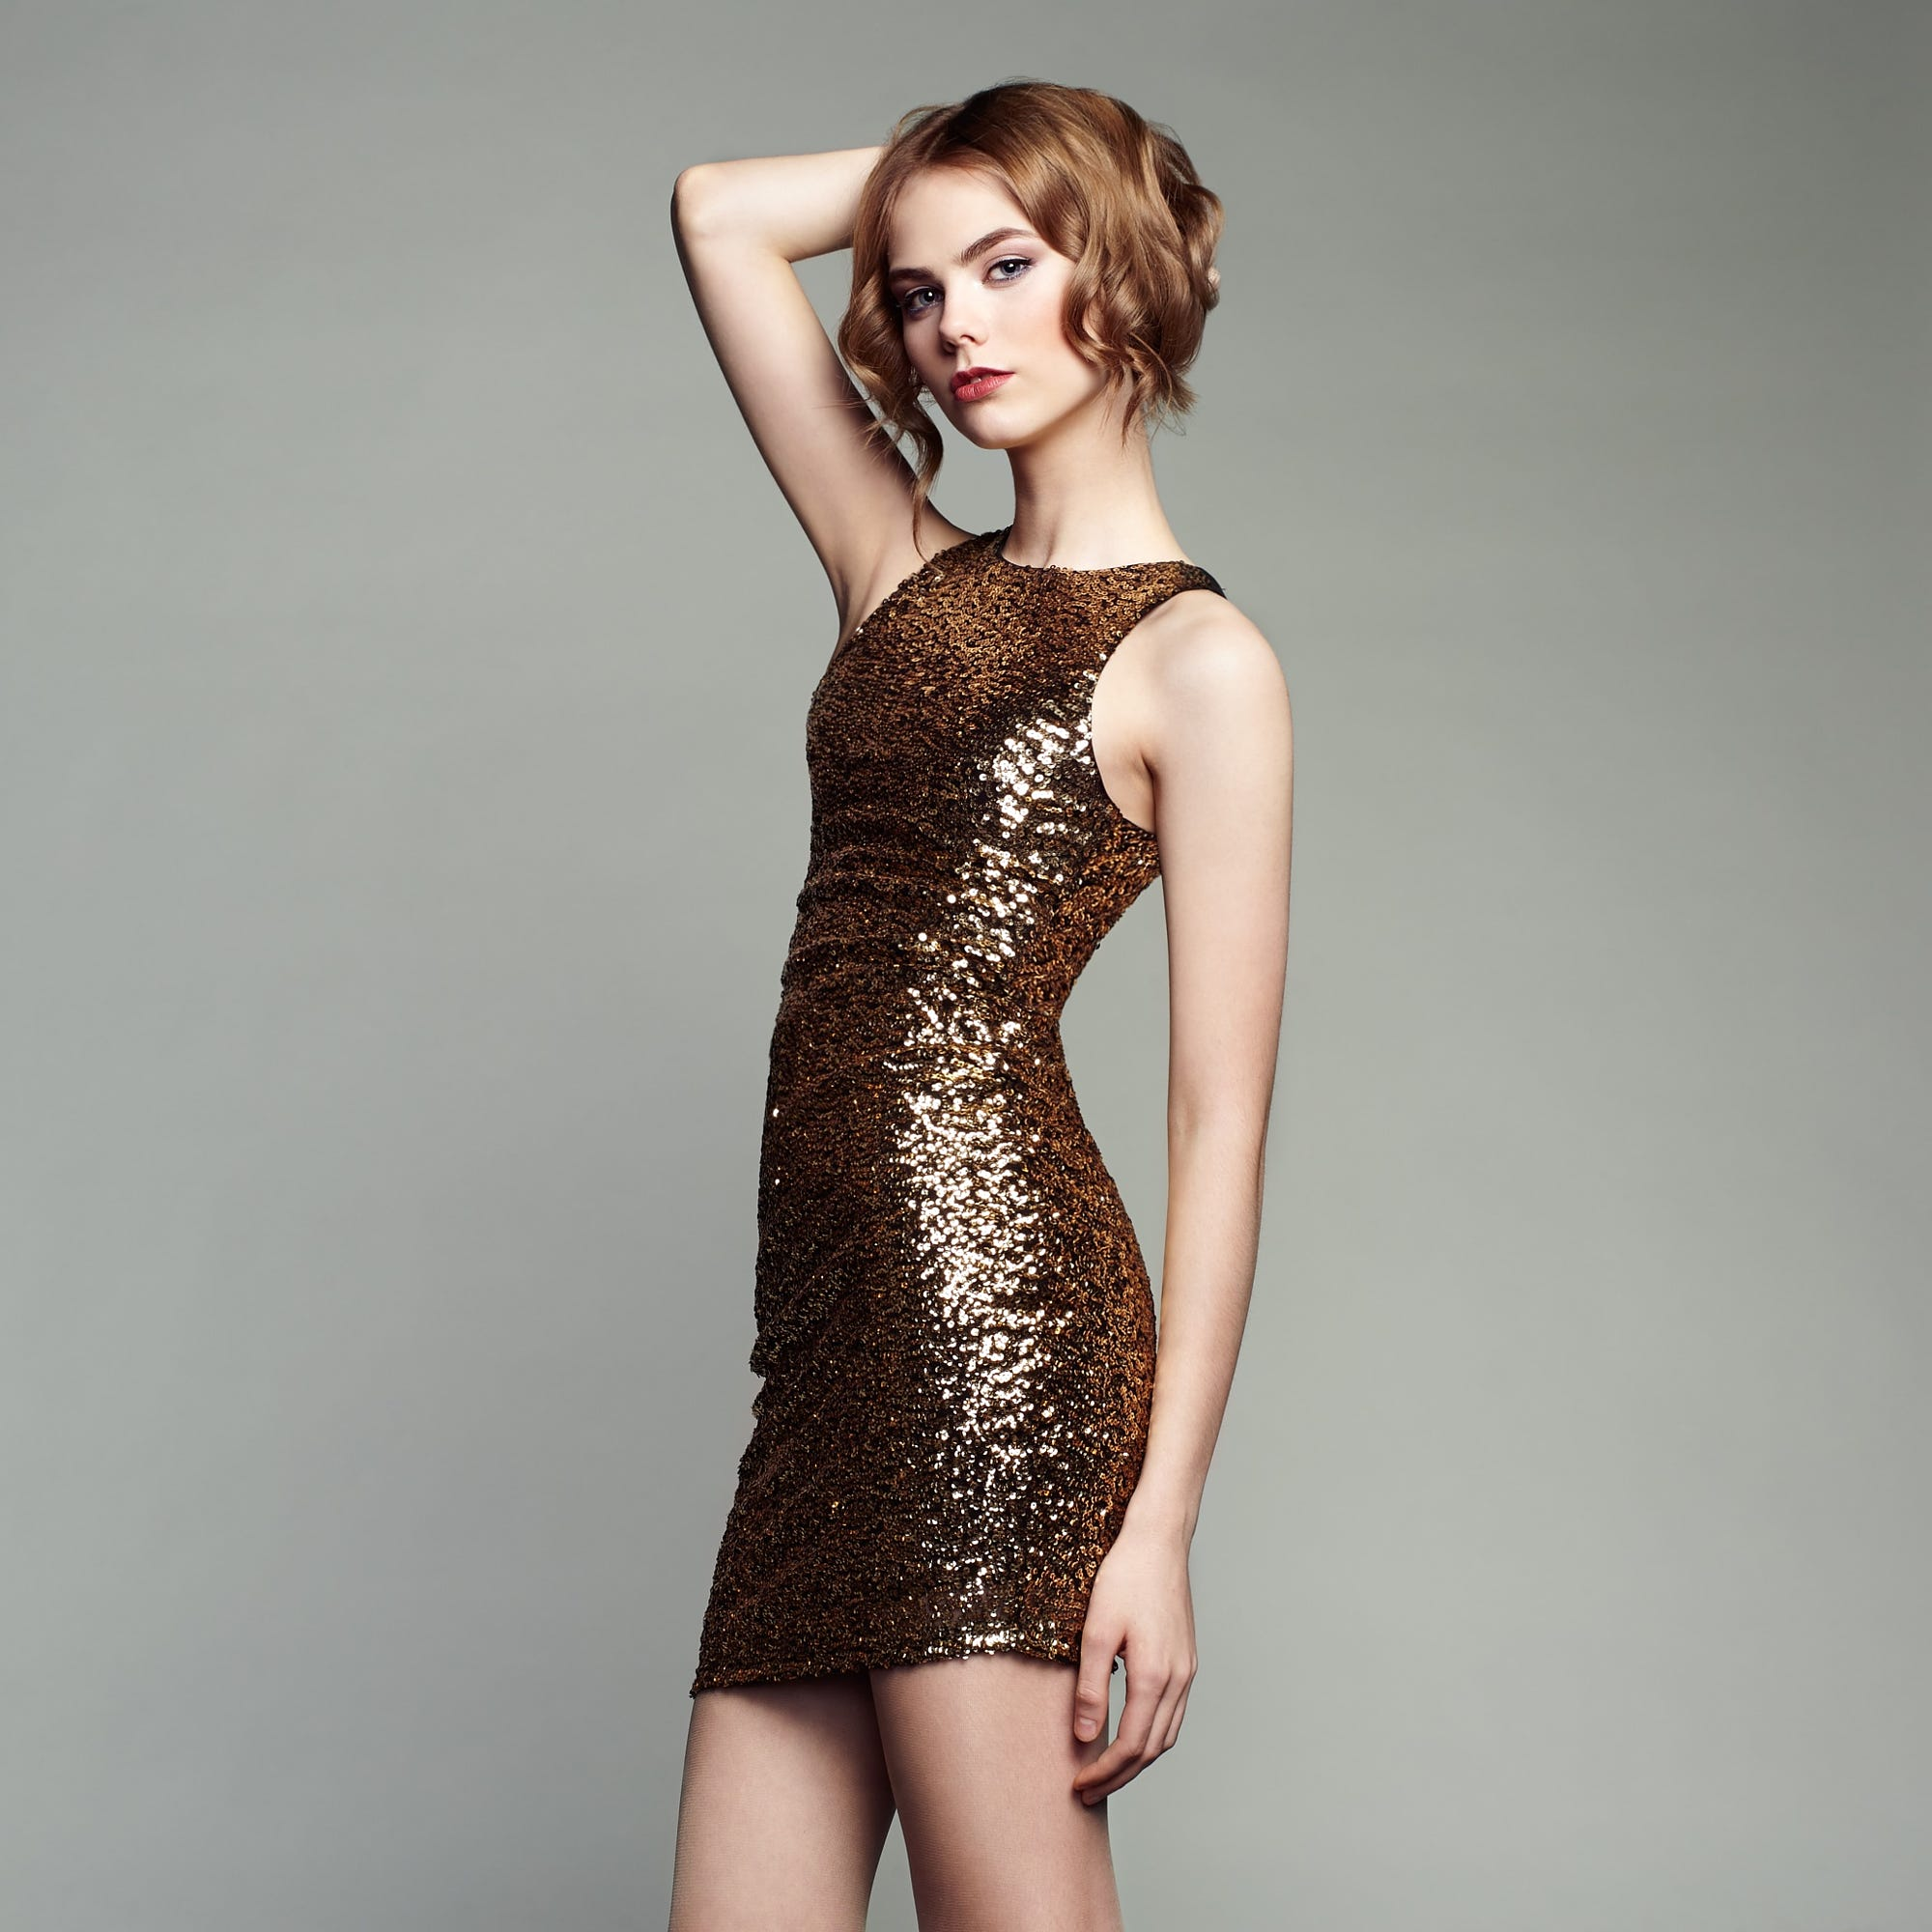 People 2000x2000 Oleg Gekman women brunette short hair hands in hair wavy hair makeup fashion gold looking at viewer lipstick tight clothing simple background scales